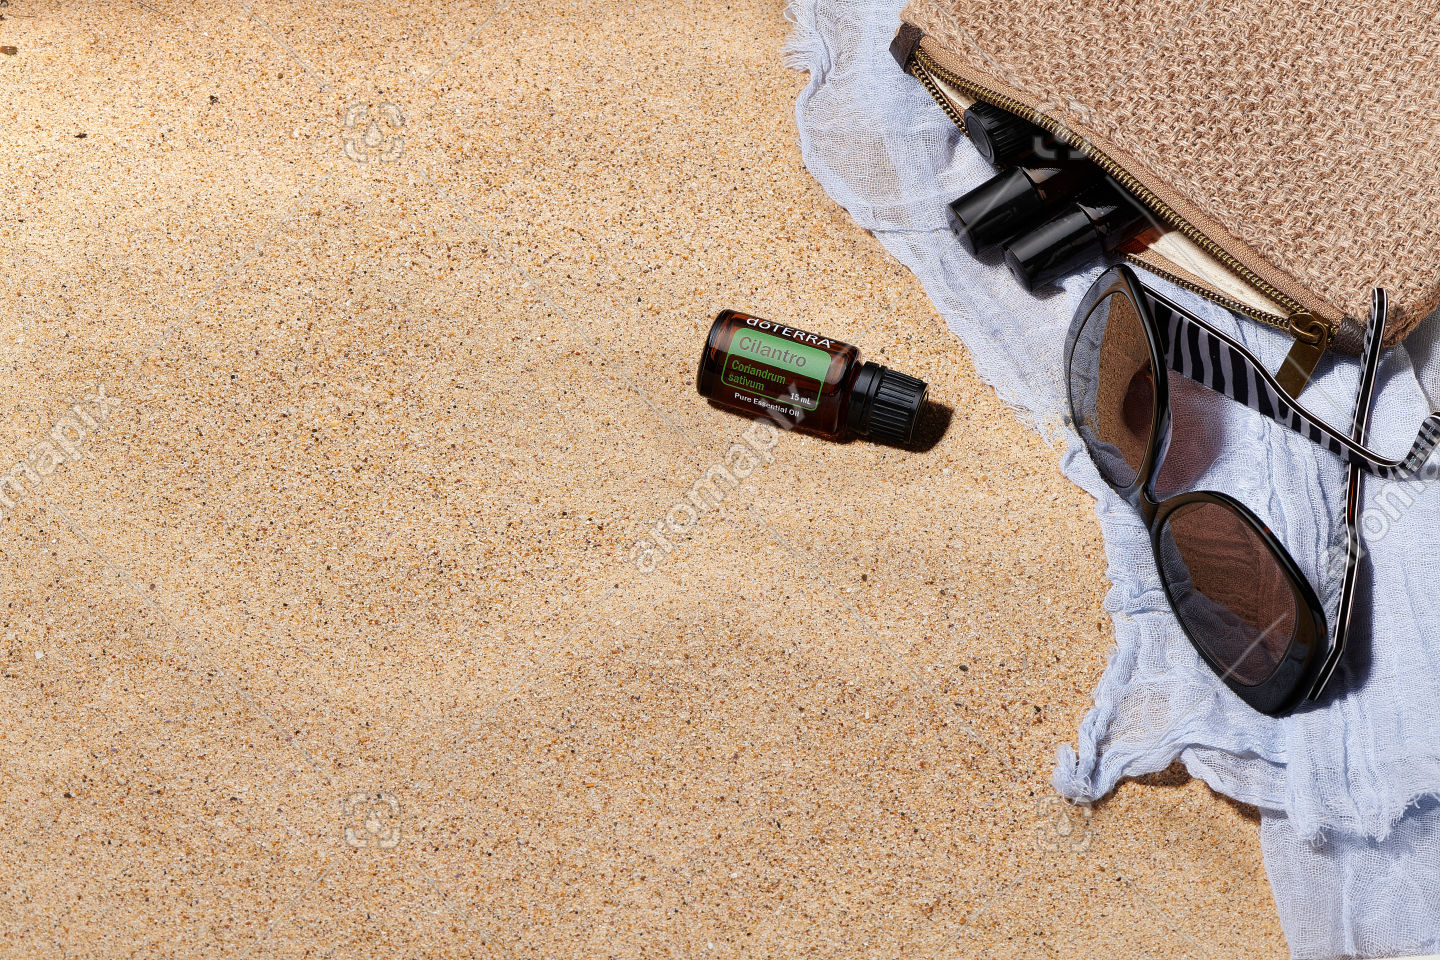 doTERRA Cilantro with accessories on sand